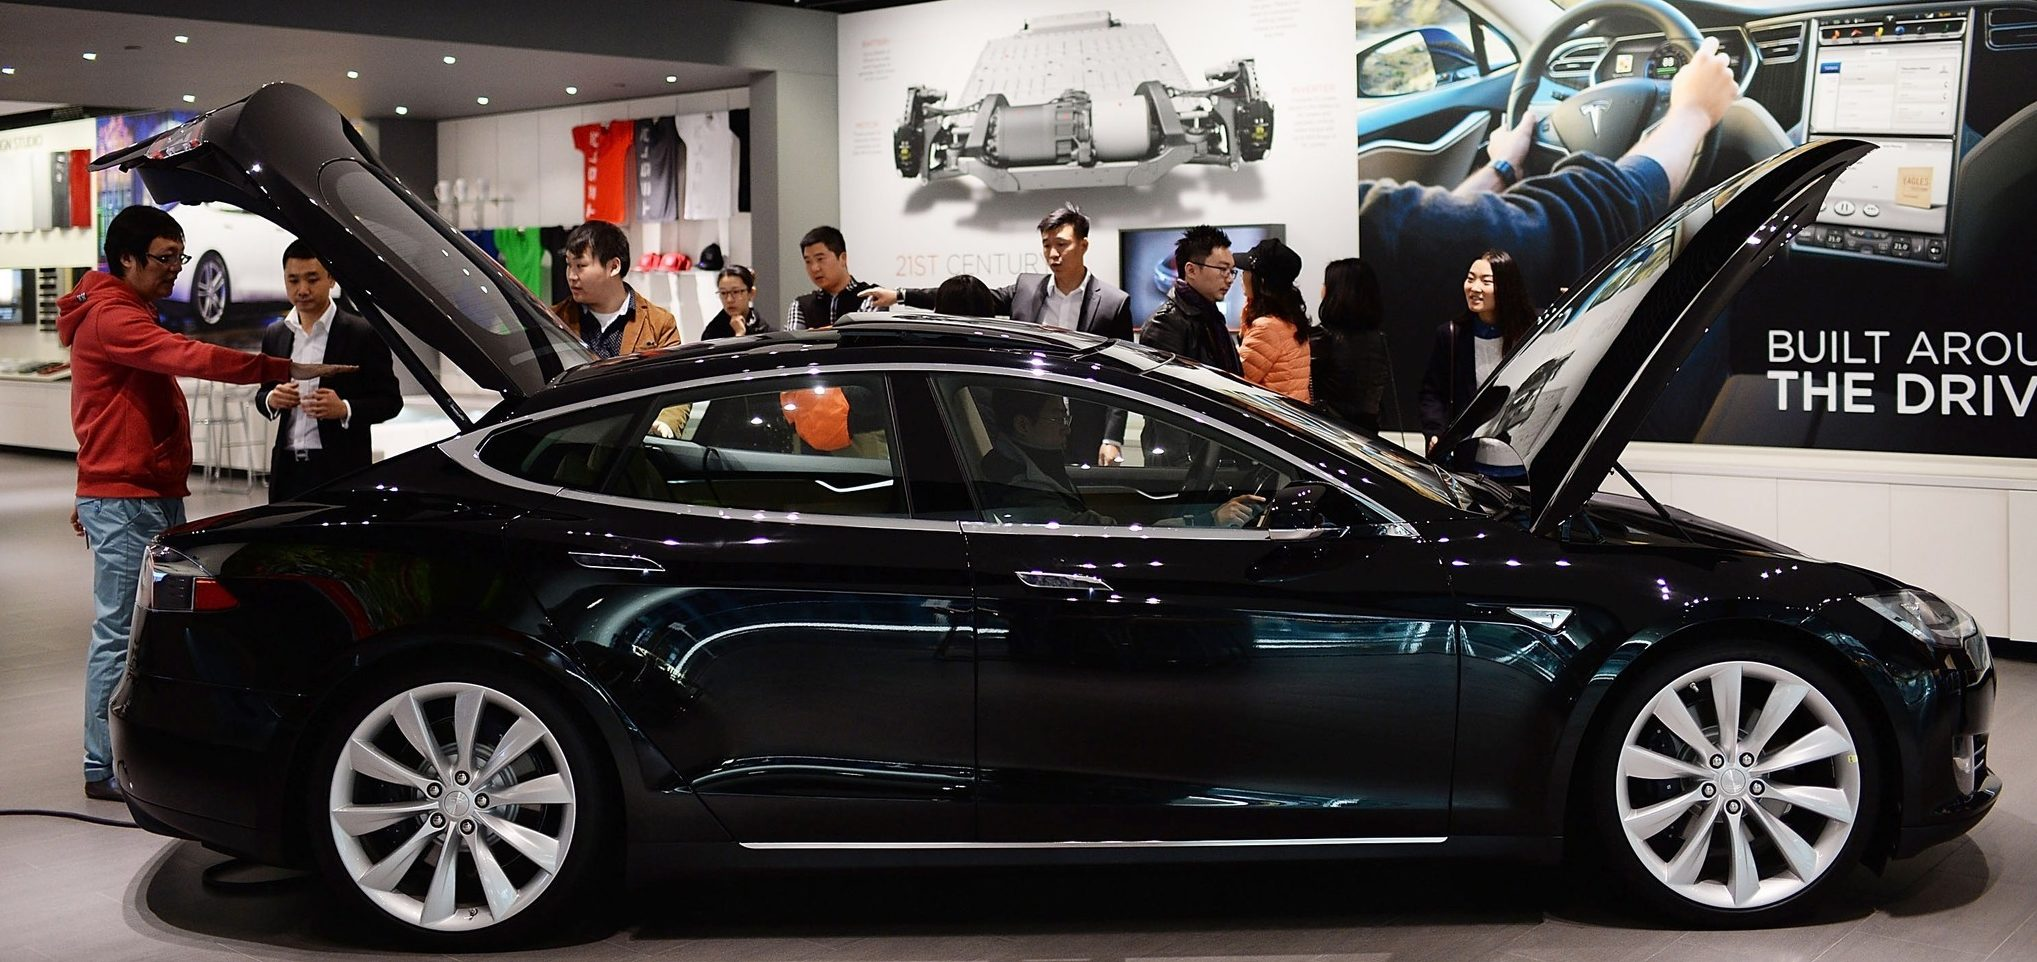 Tesla is spurring innovation in China's EV market, says